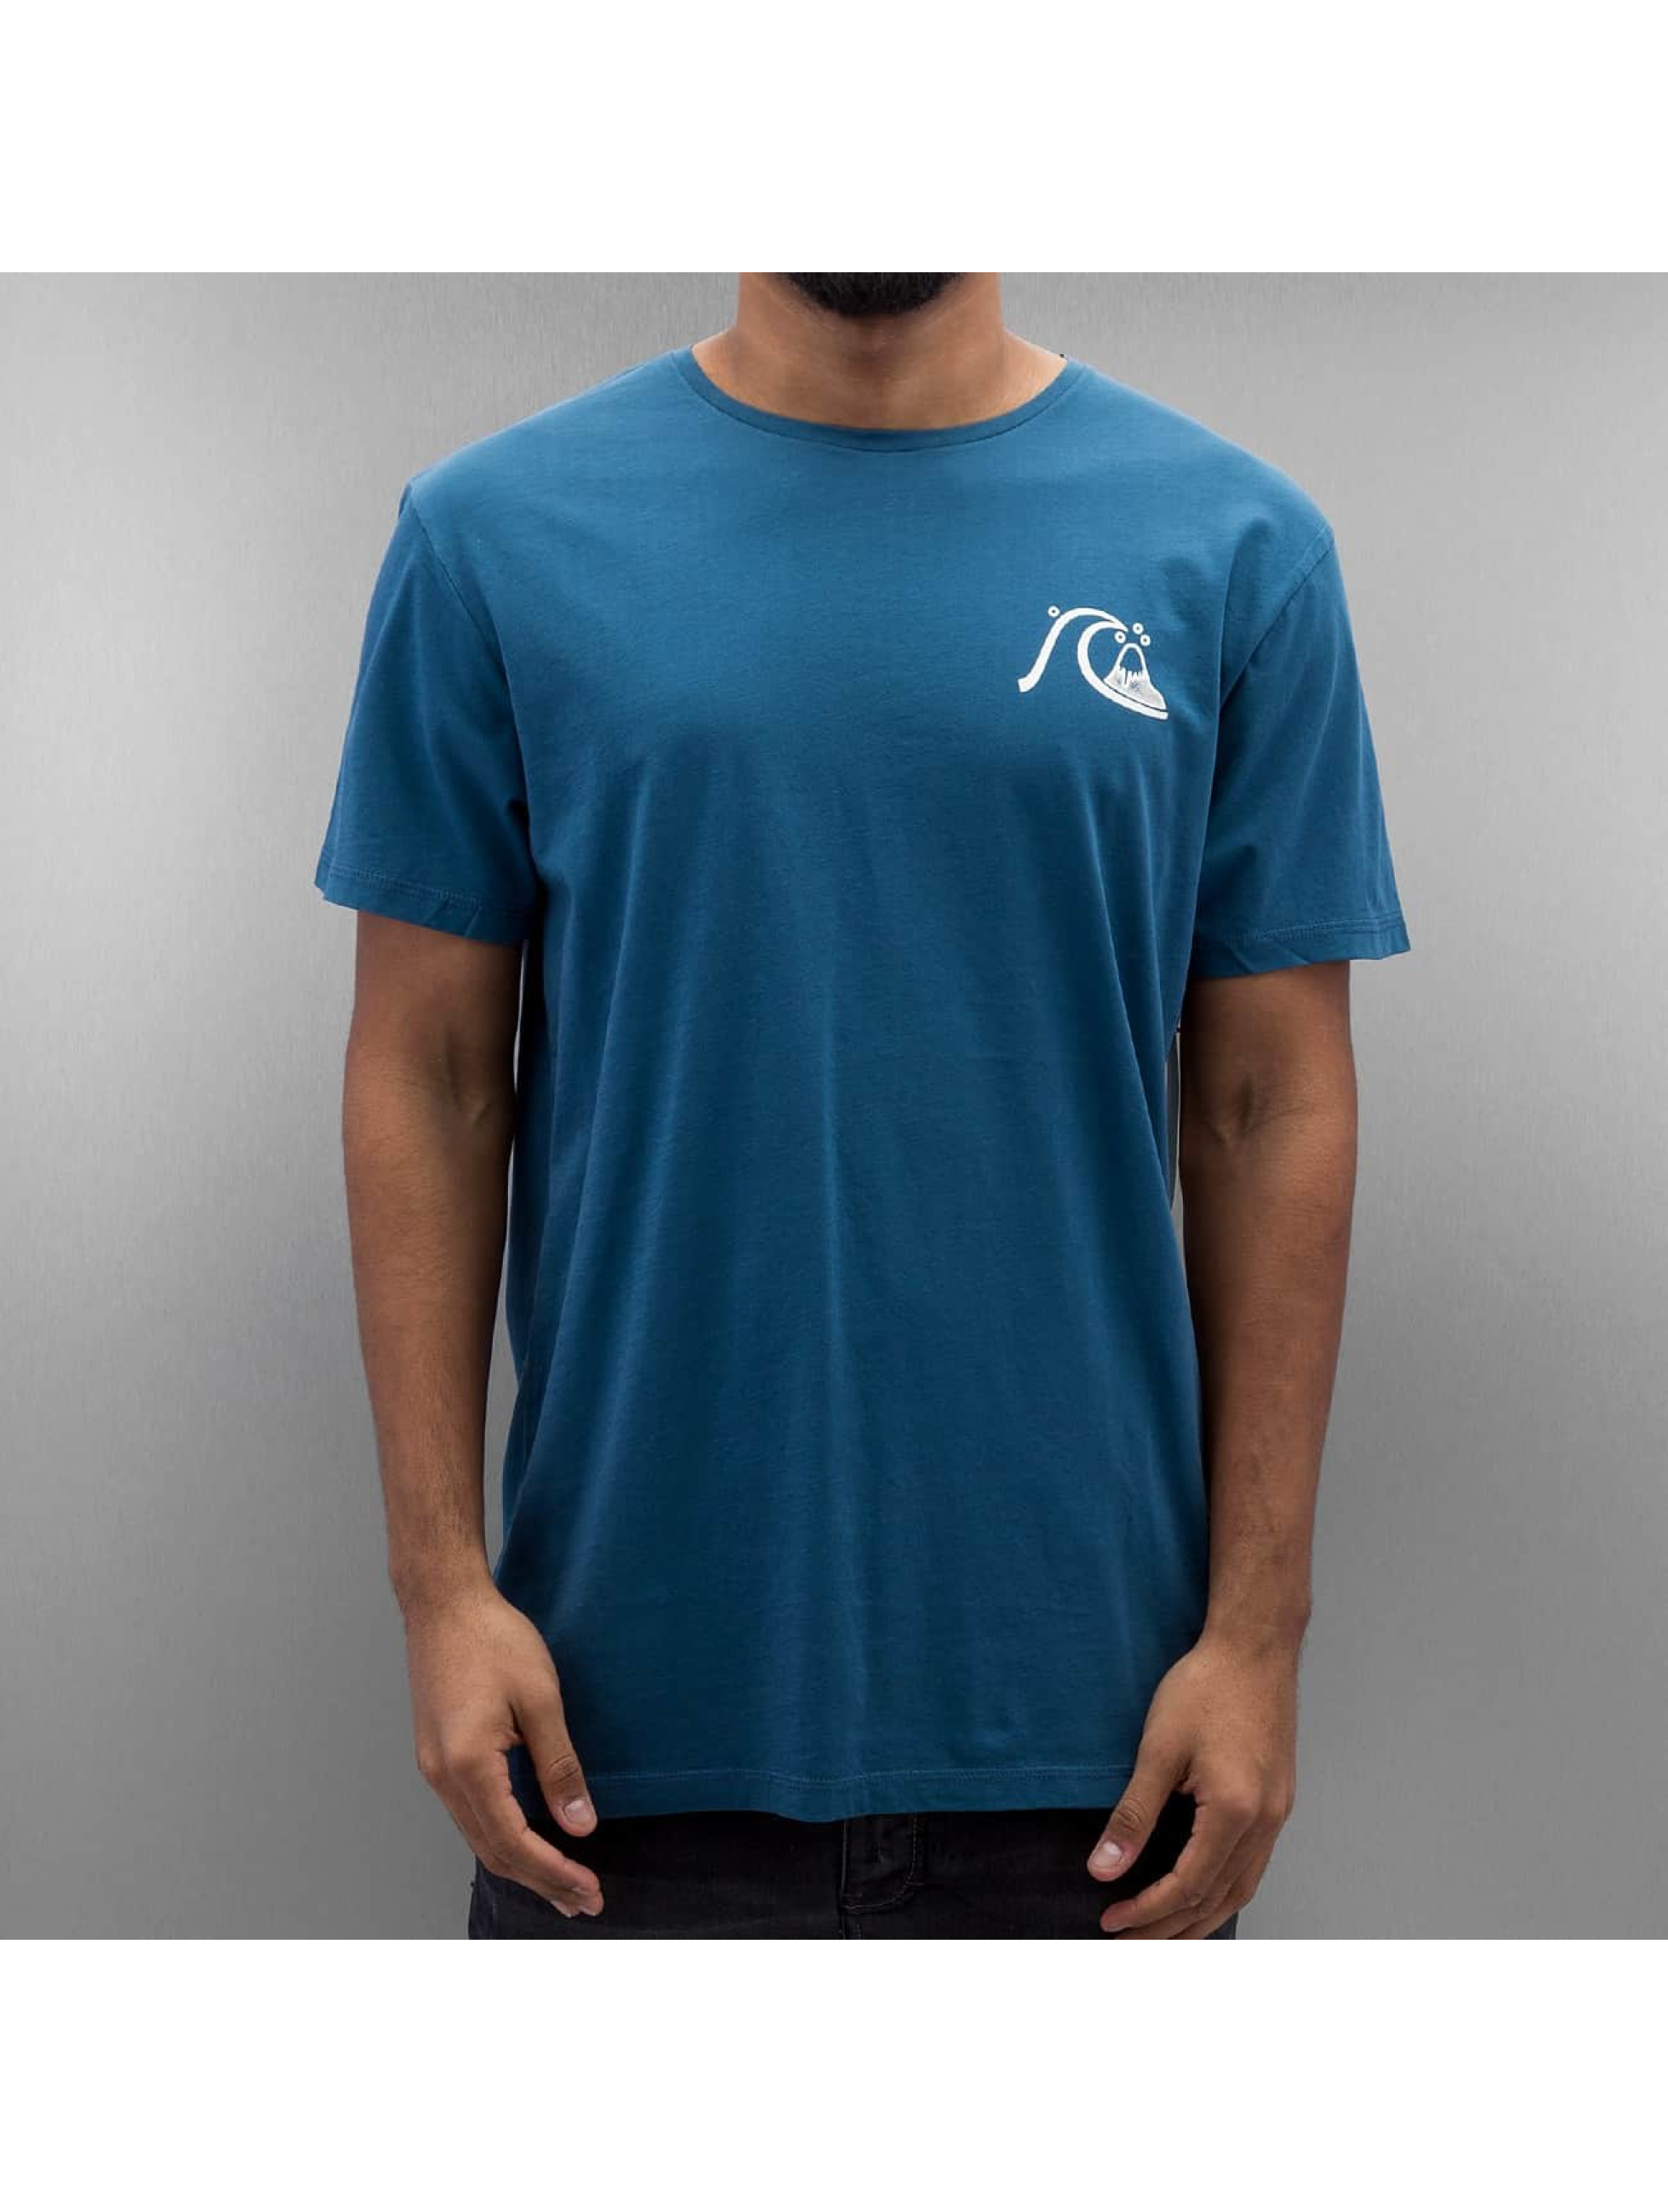 Quiksilver Mellow Dingo T-Shirt Indian Teal Sale Angebote